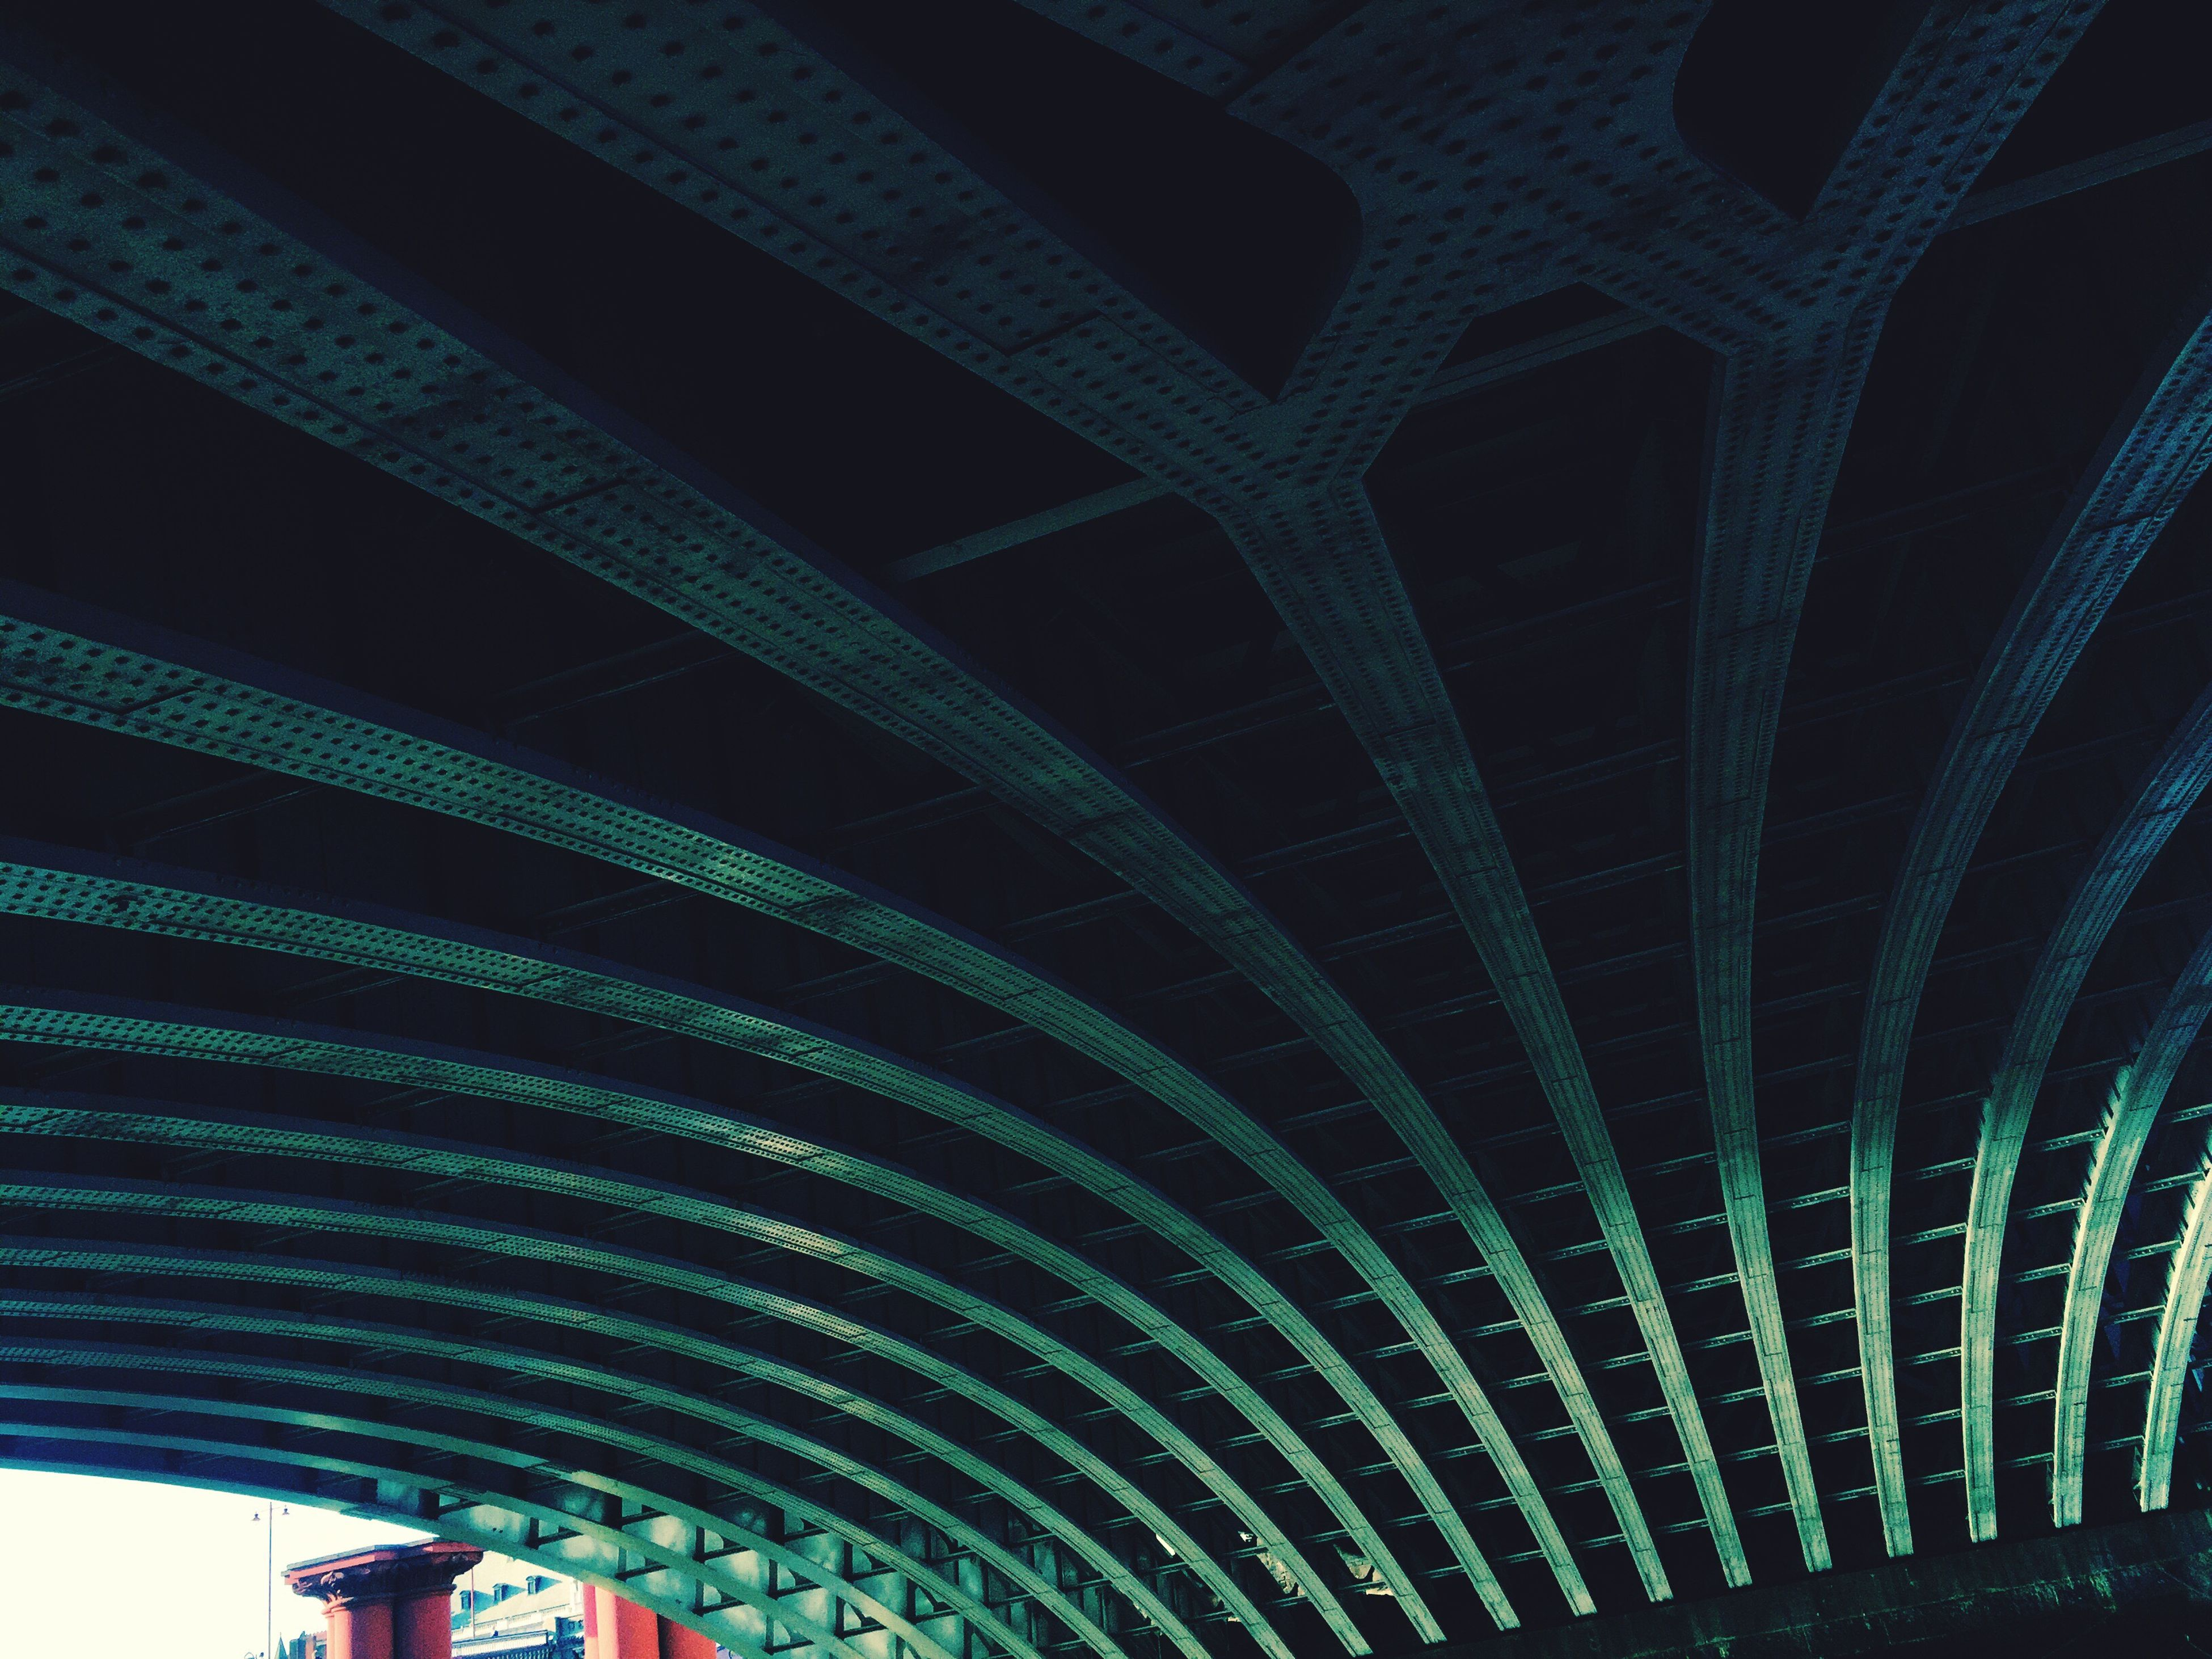 low angle view, night, illuminated, ceiling, architectural feature, modern, dark, below, tall, green color